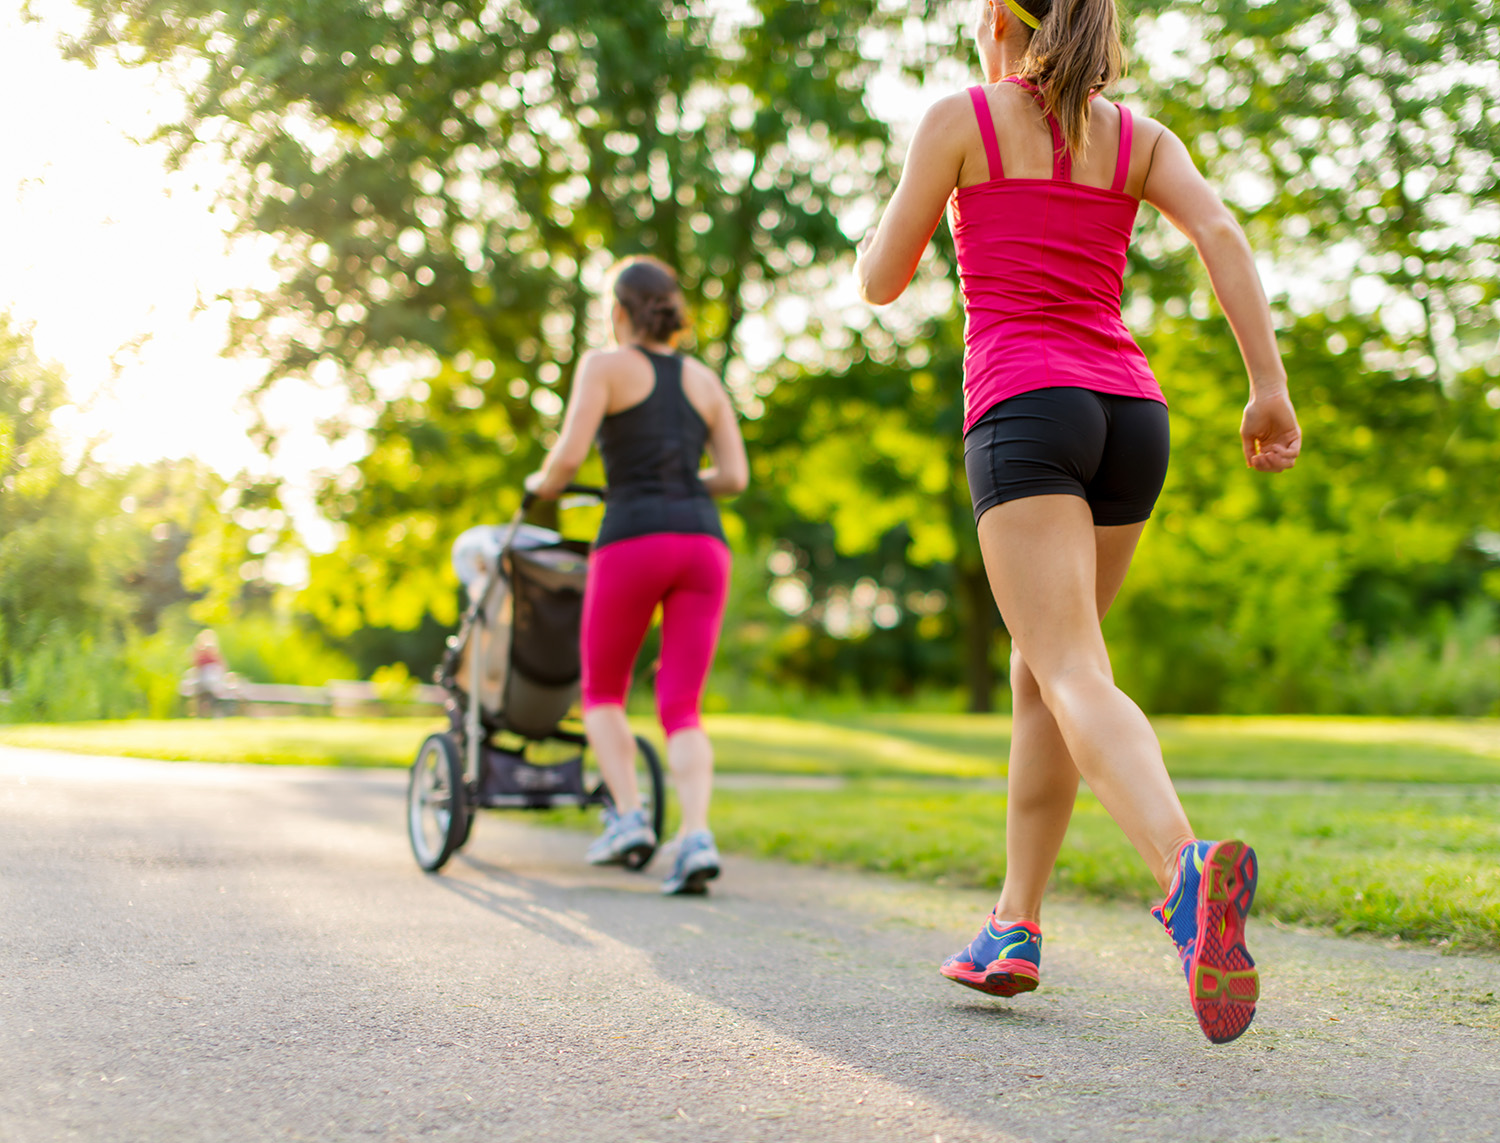 Running Postpartum - Running with a stroller requires more advanced core strength